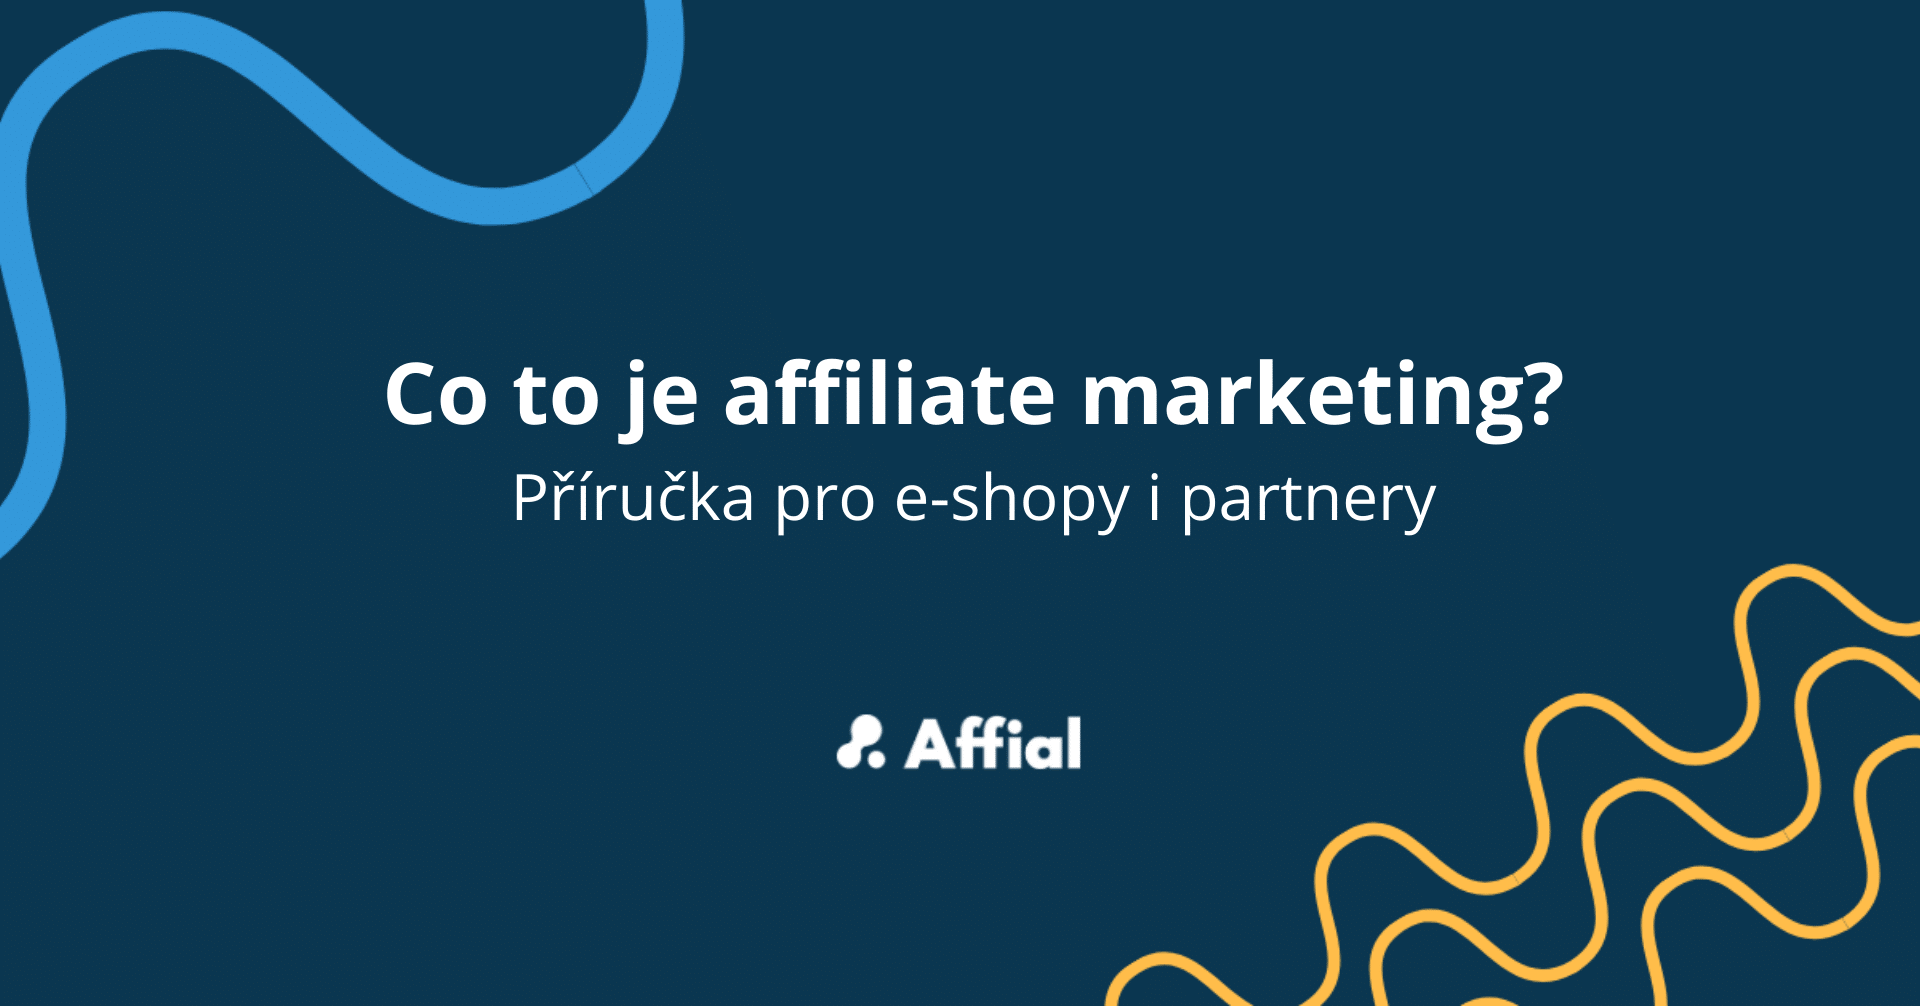 co to je affiliate marketing - úvod